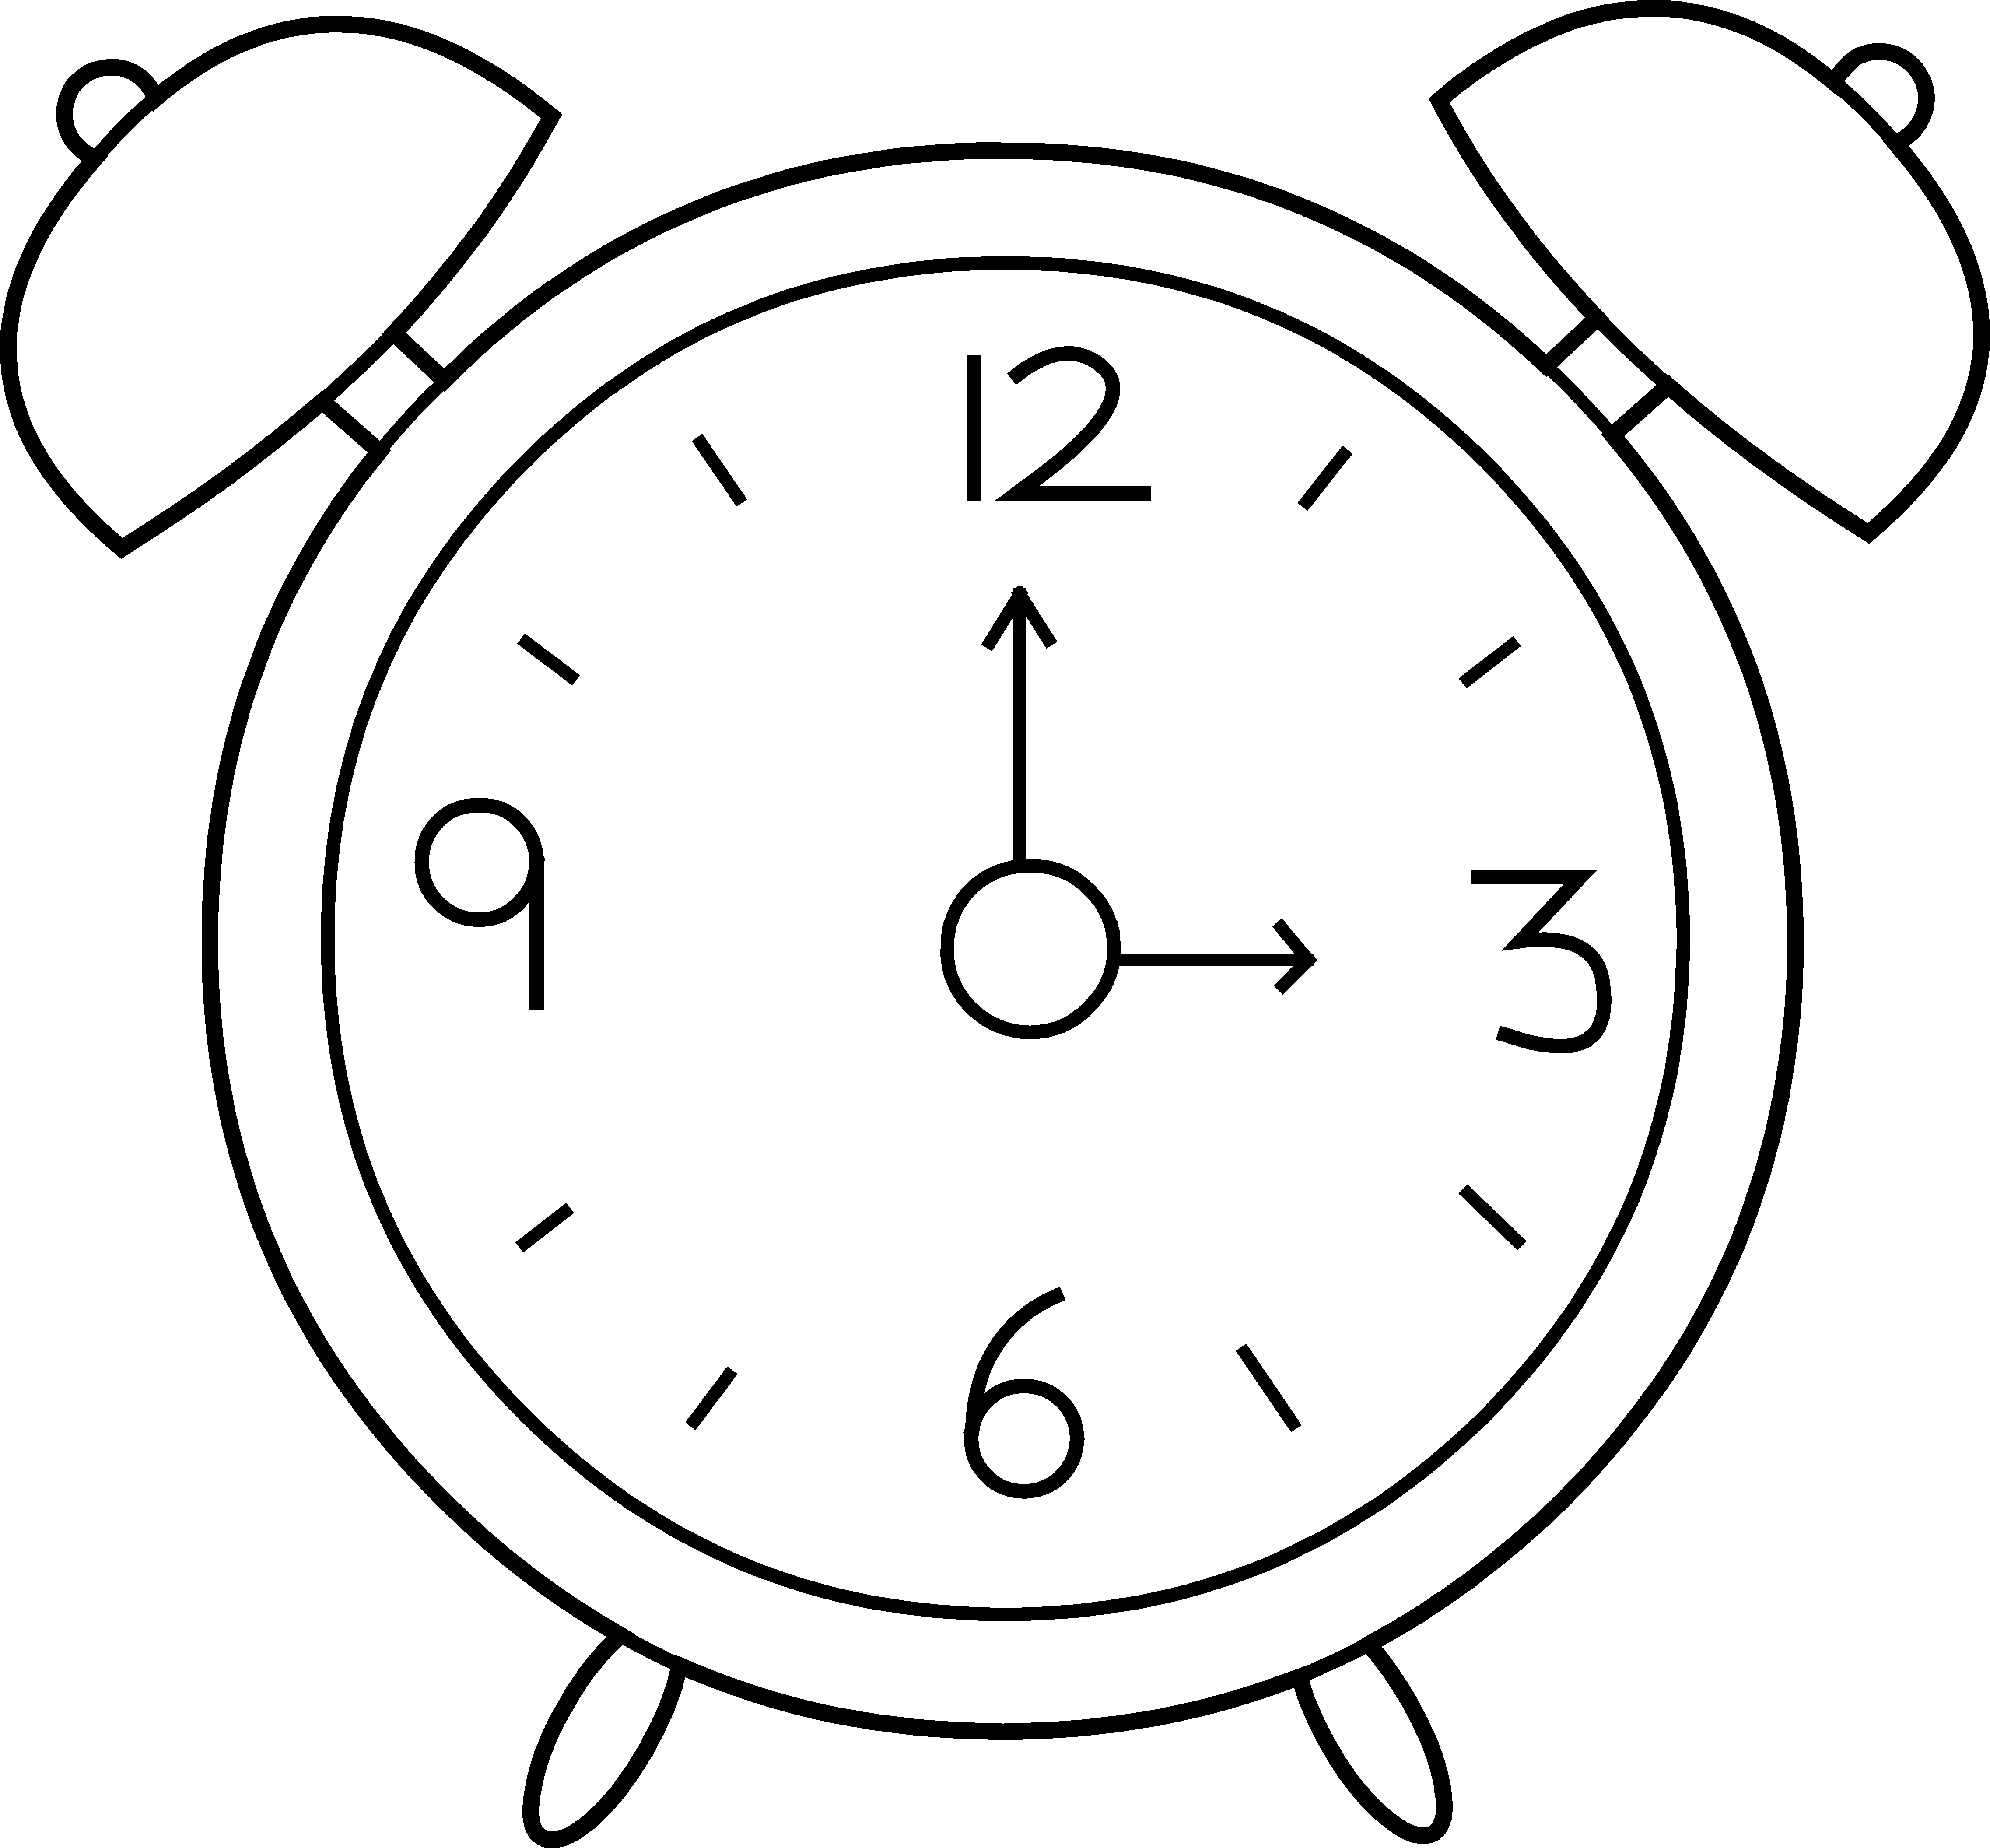 45 Clock Black And White free clipart.